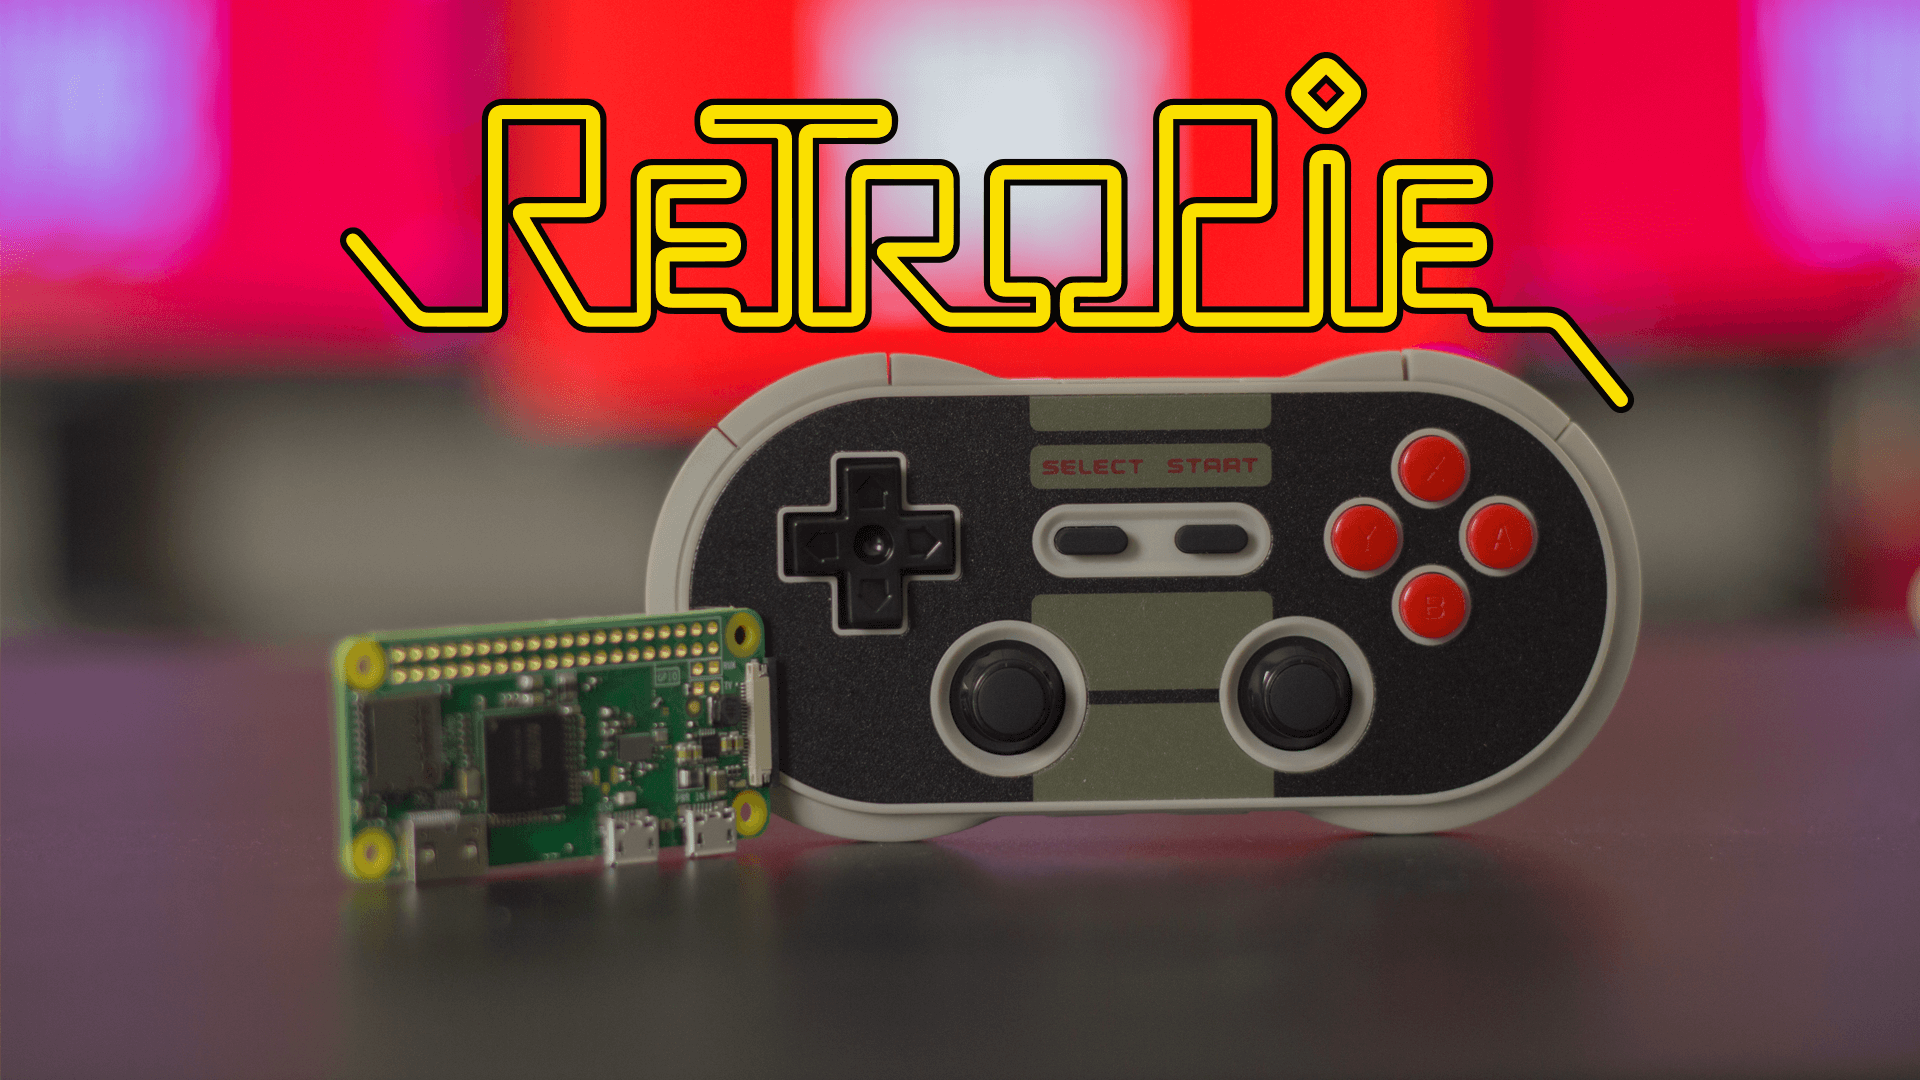 Retropie FIX for Raspberry Pi Zero W